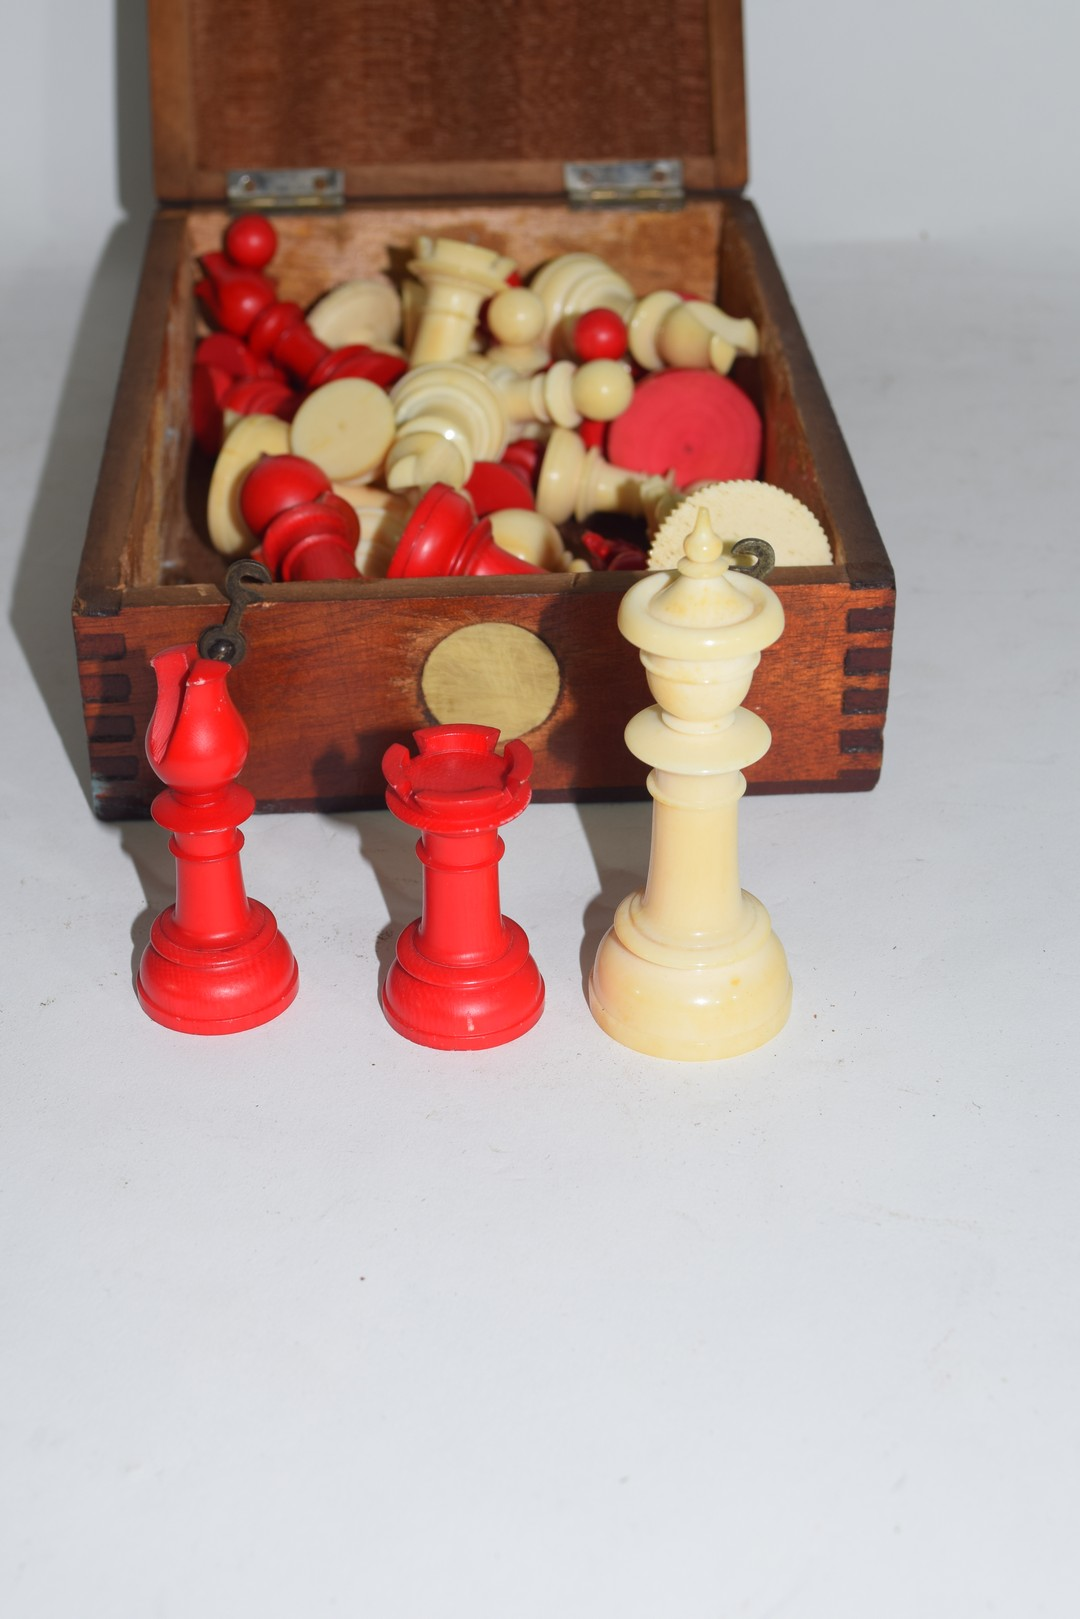 Ivory Chess Pieces - Image 2 of 3